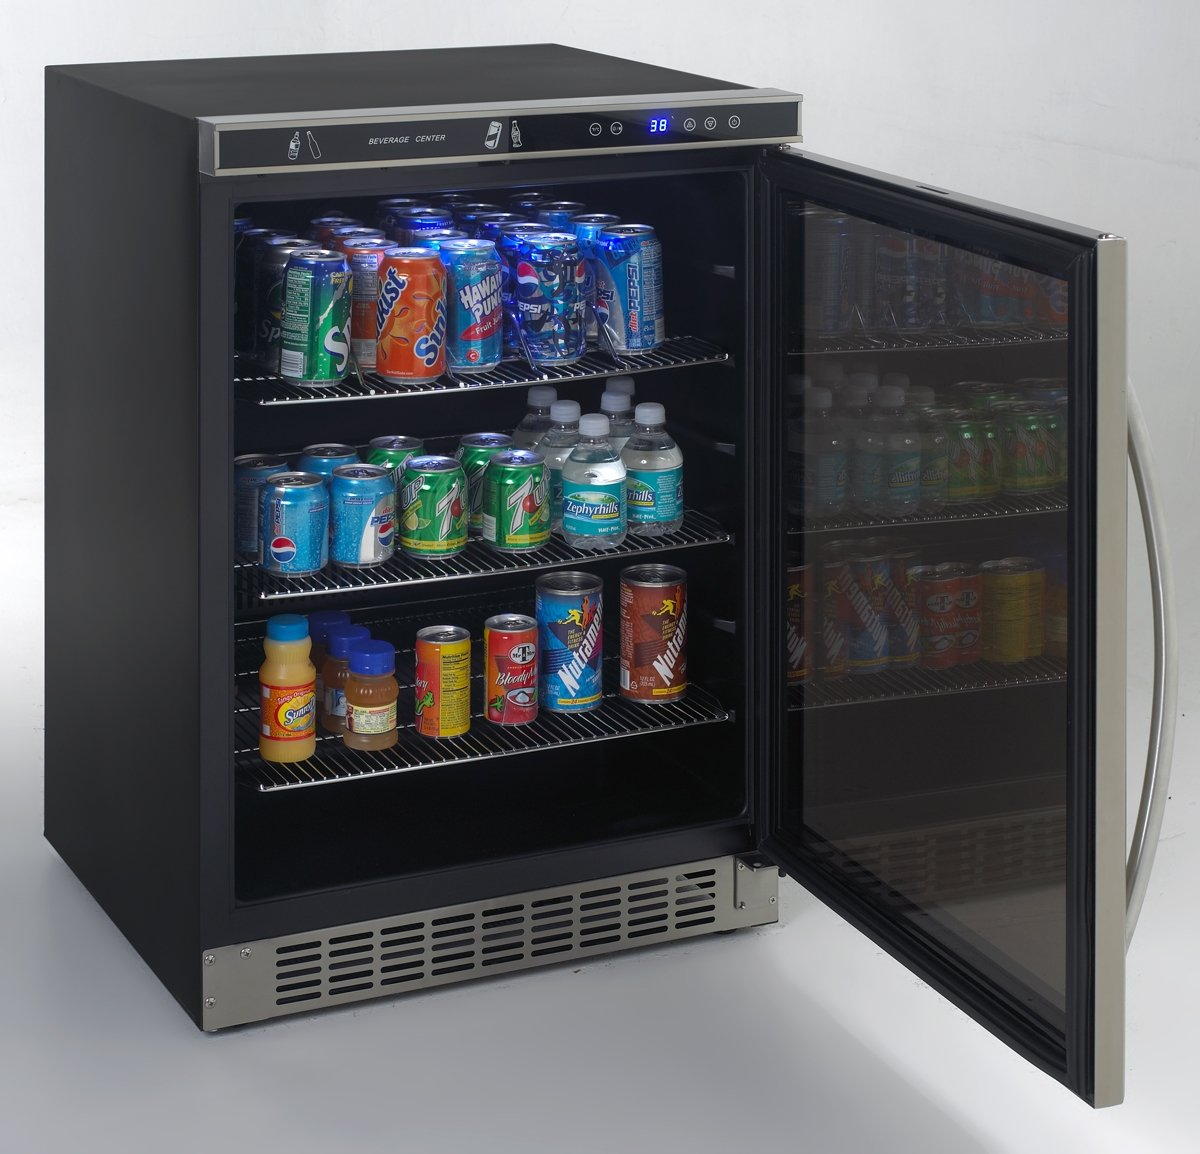 amazoncom avanti avanti bca5105sg1 beverage cooler 53 cubic feet appliances - Glass Door Mini Fridge